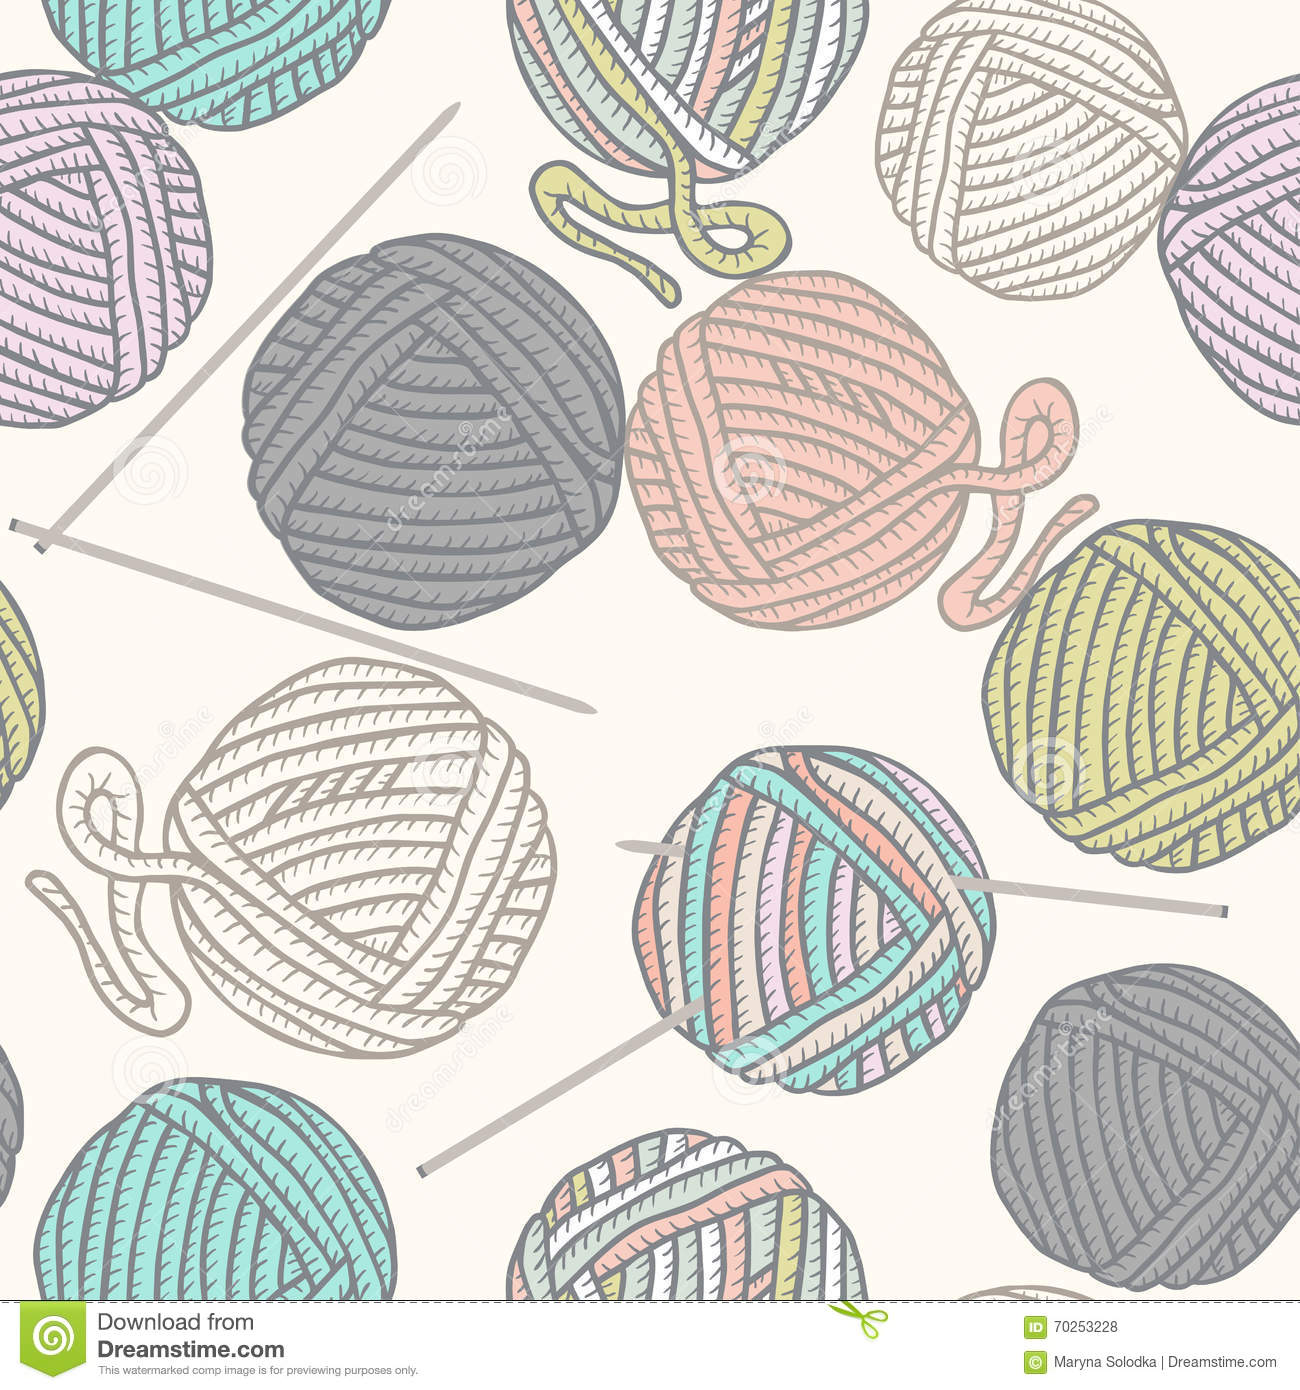 Cartoon Knitting Patterns : Seamless Pattern With Balls Of Yarn And Knitting Needles. Background In Carto...